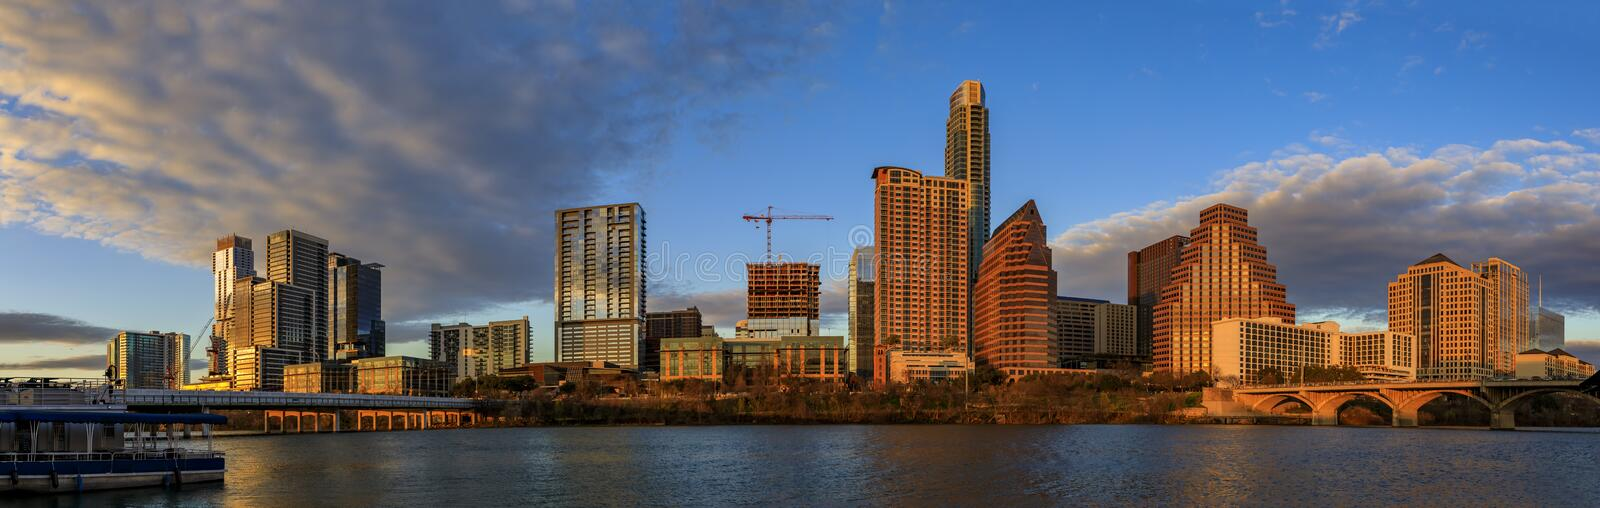 Panorama with downtown view across Lady Bird Lake or Town Lake on Colorado River at sunset golden hour, Austin Texas USA. Panorama with downtown high-rises stock photos